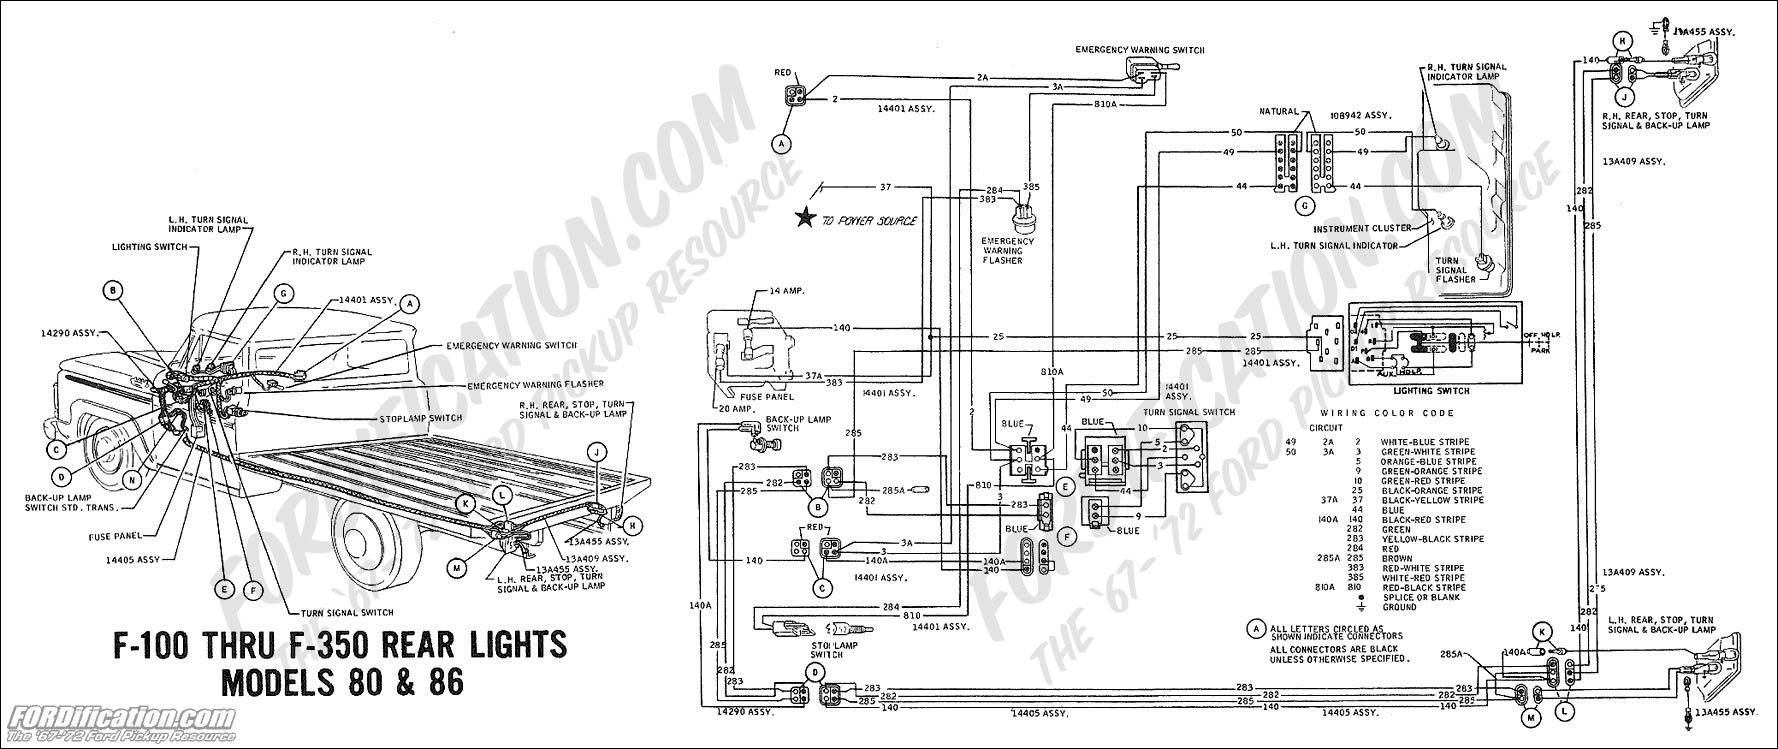 wiring_69rearlights mdls80 86 ford truck technical drawings and schematics section h wiring ford truck wiring diagrams free at readyjetset.co